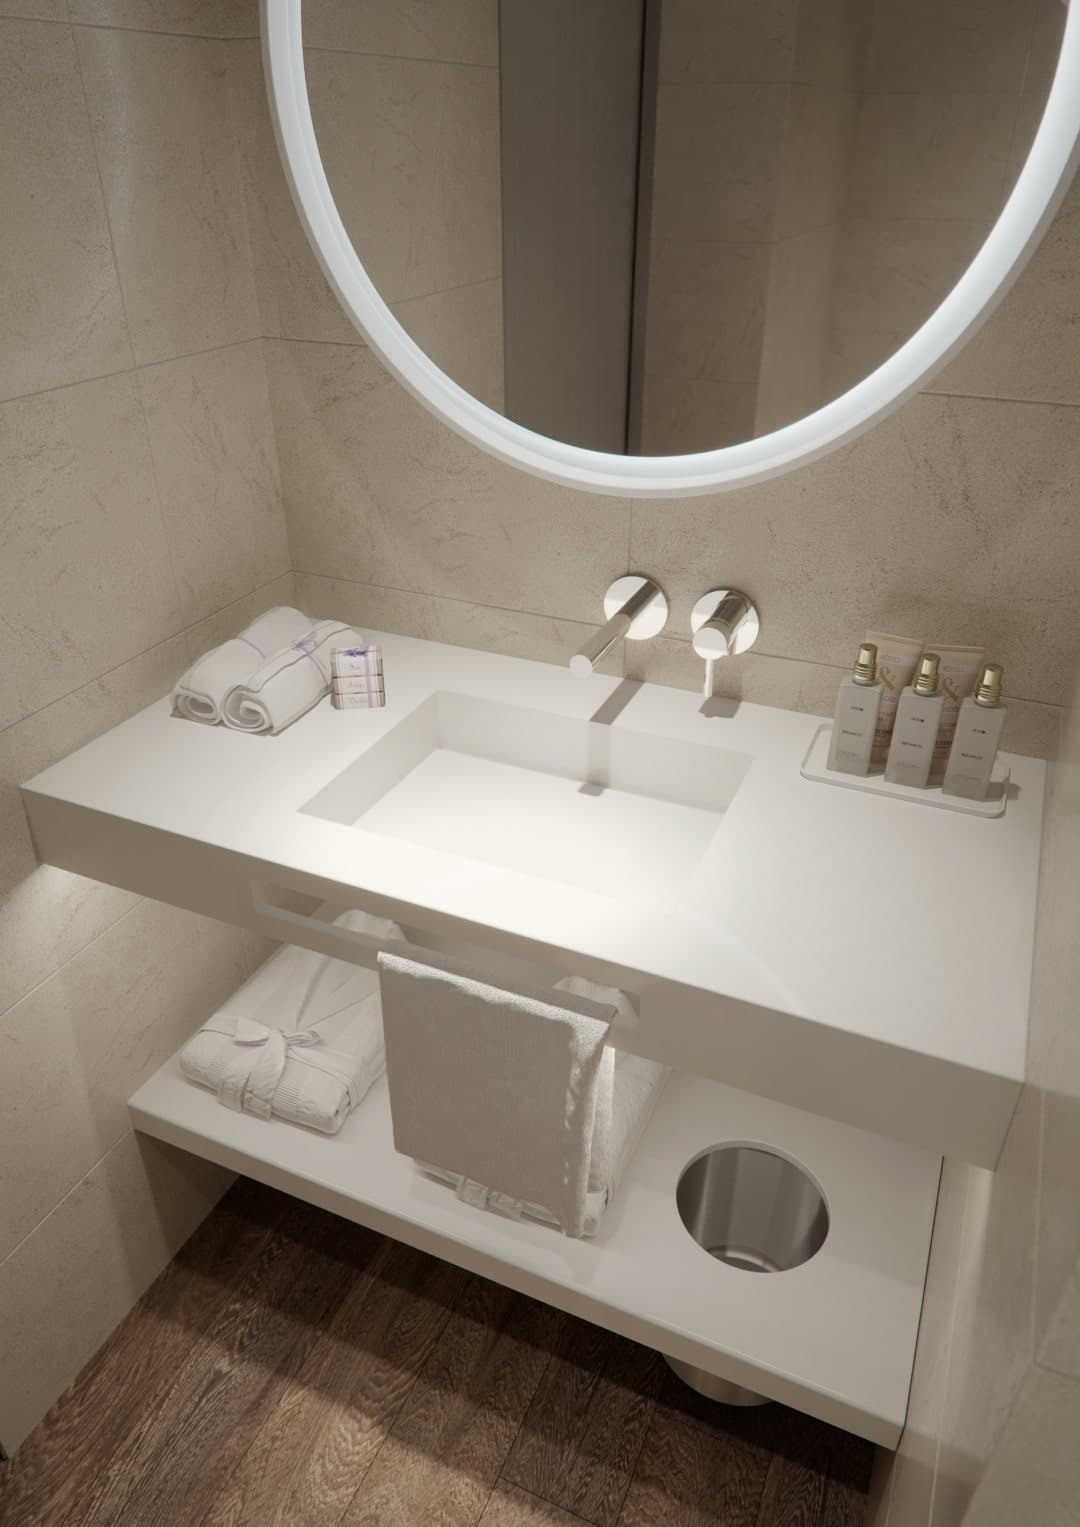 Cruise ship bathroom renovation